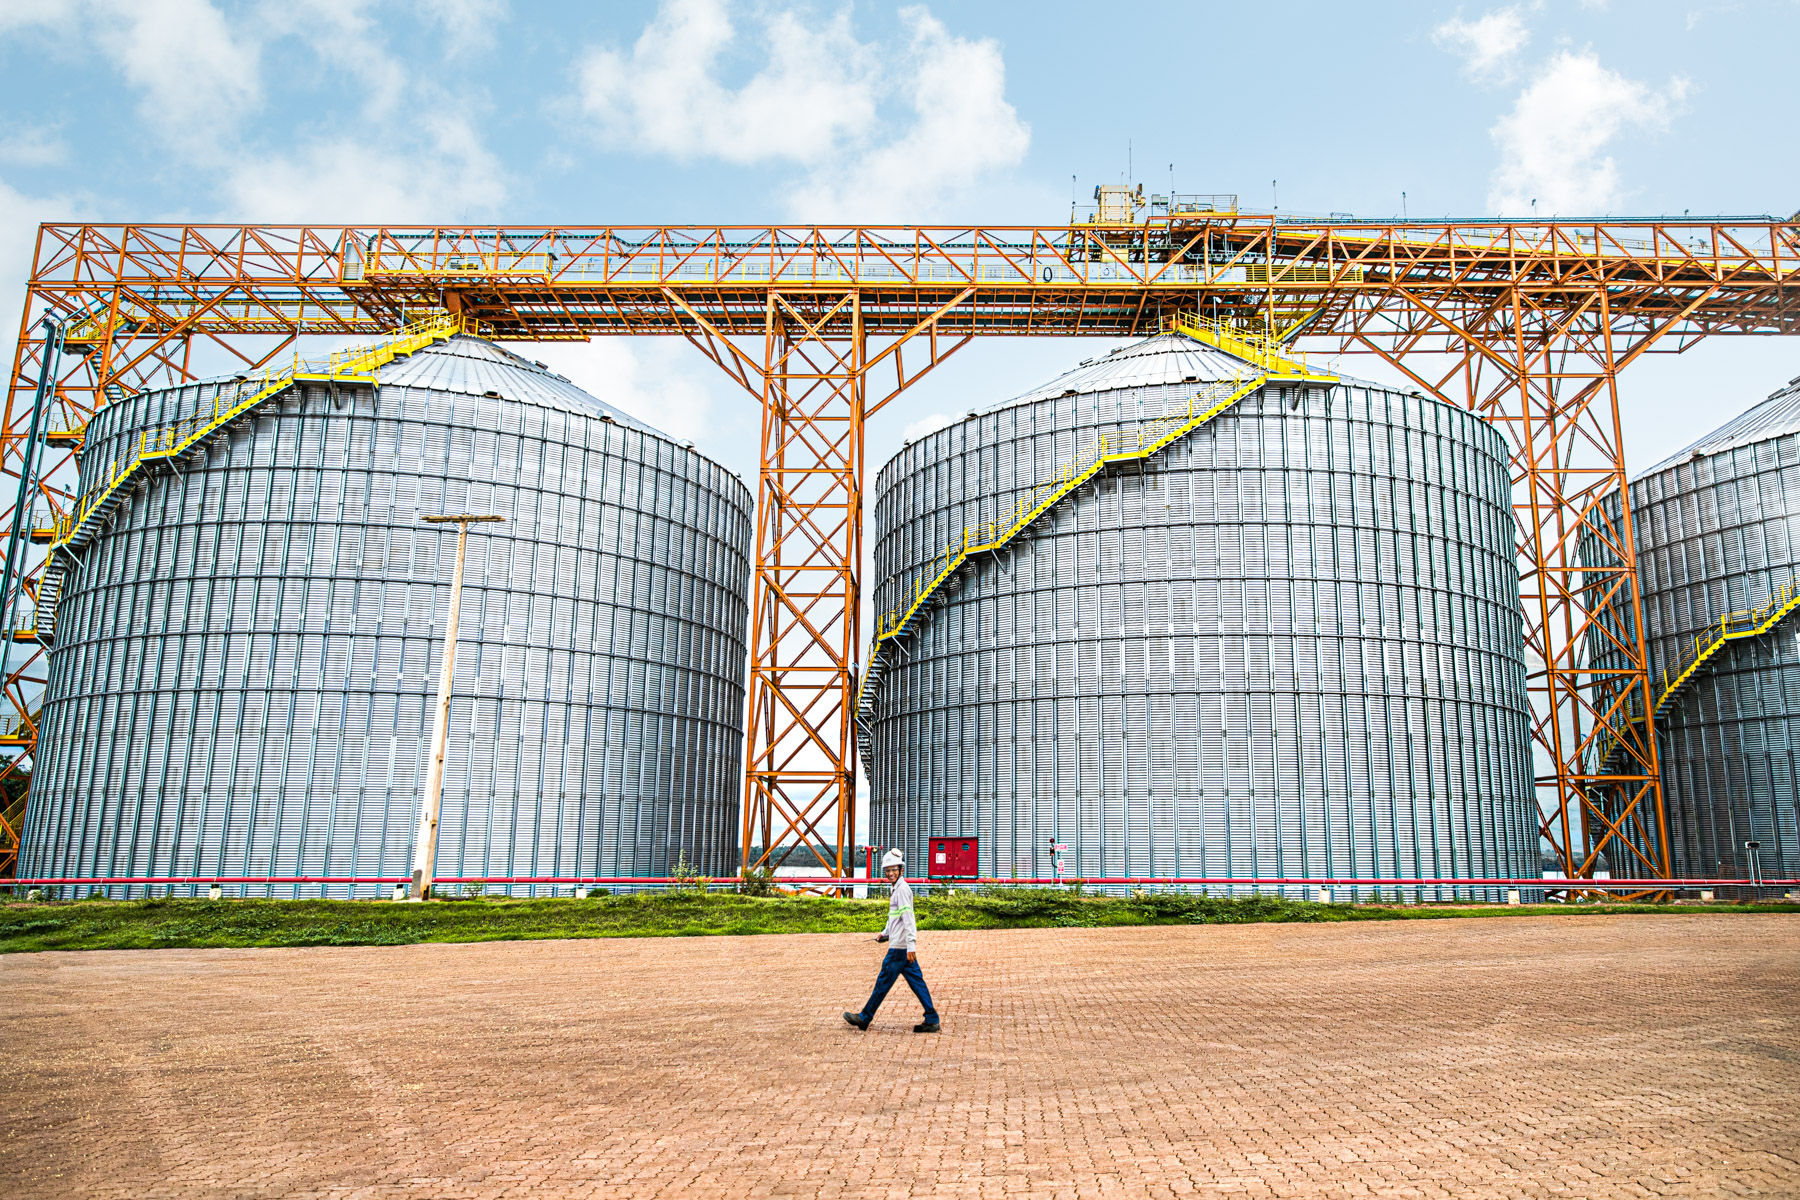 0918_0817_31_MIRITITUBA_GRAIN_SILOS_0335-Edit_v3